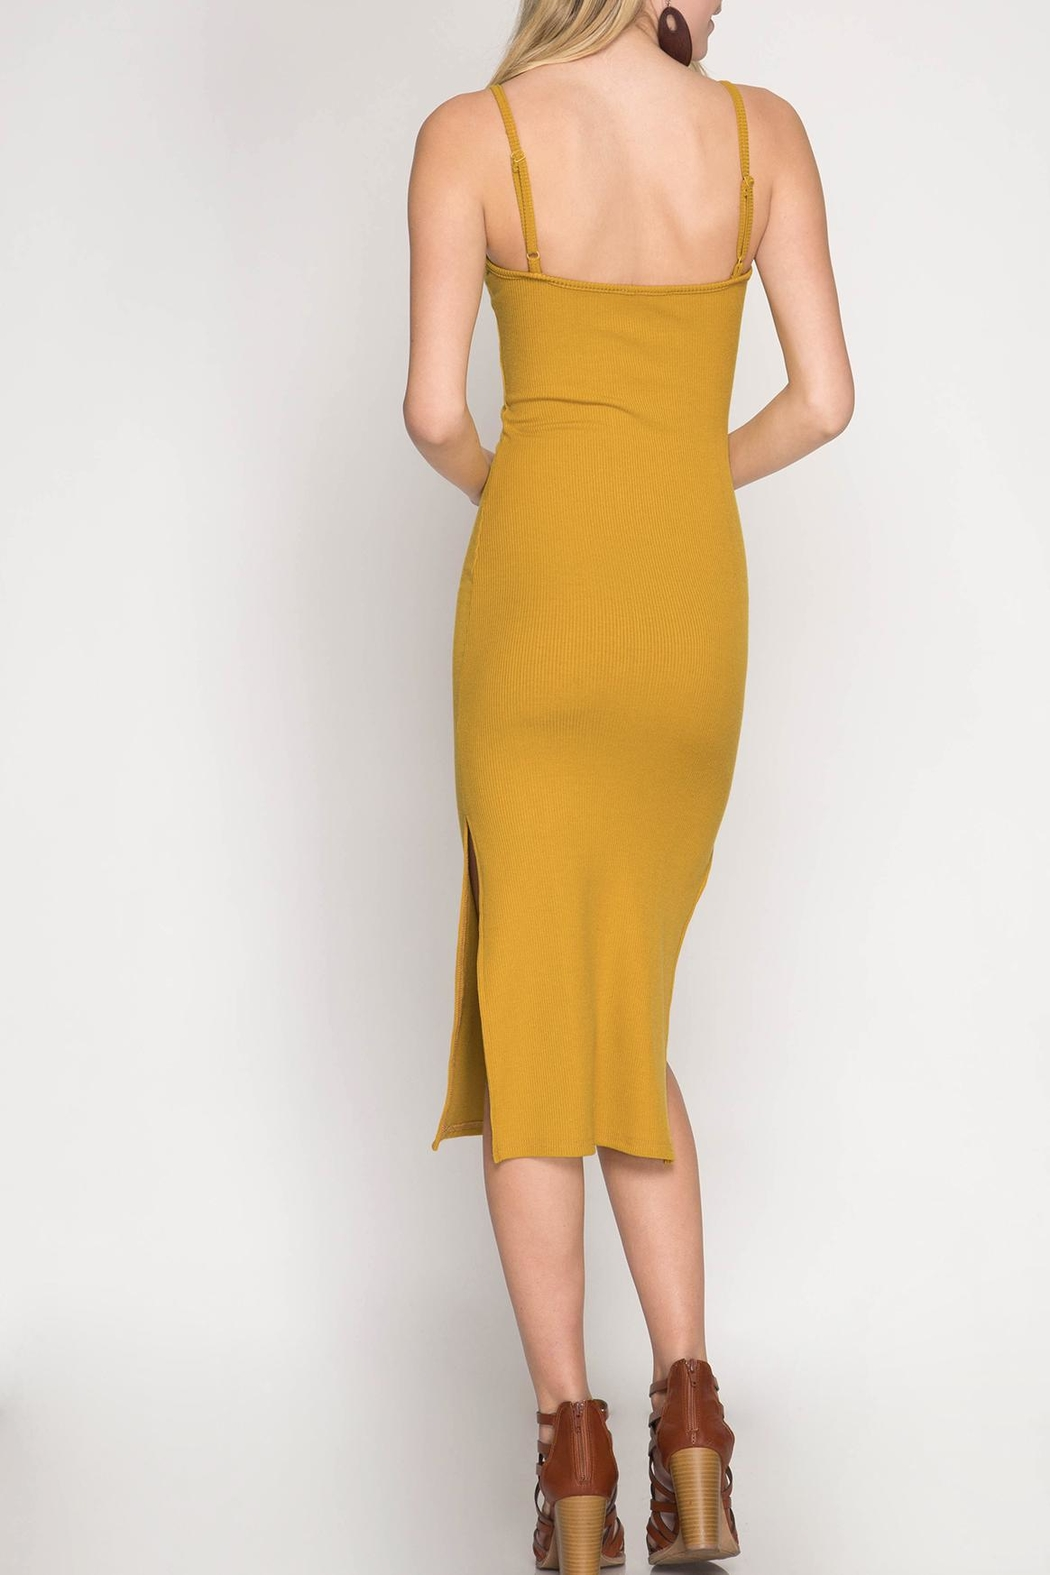 She + Sky Midi-Ribbed Bodycon Dress - Front Full Image